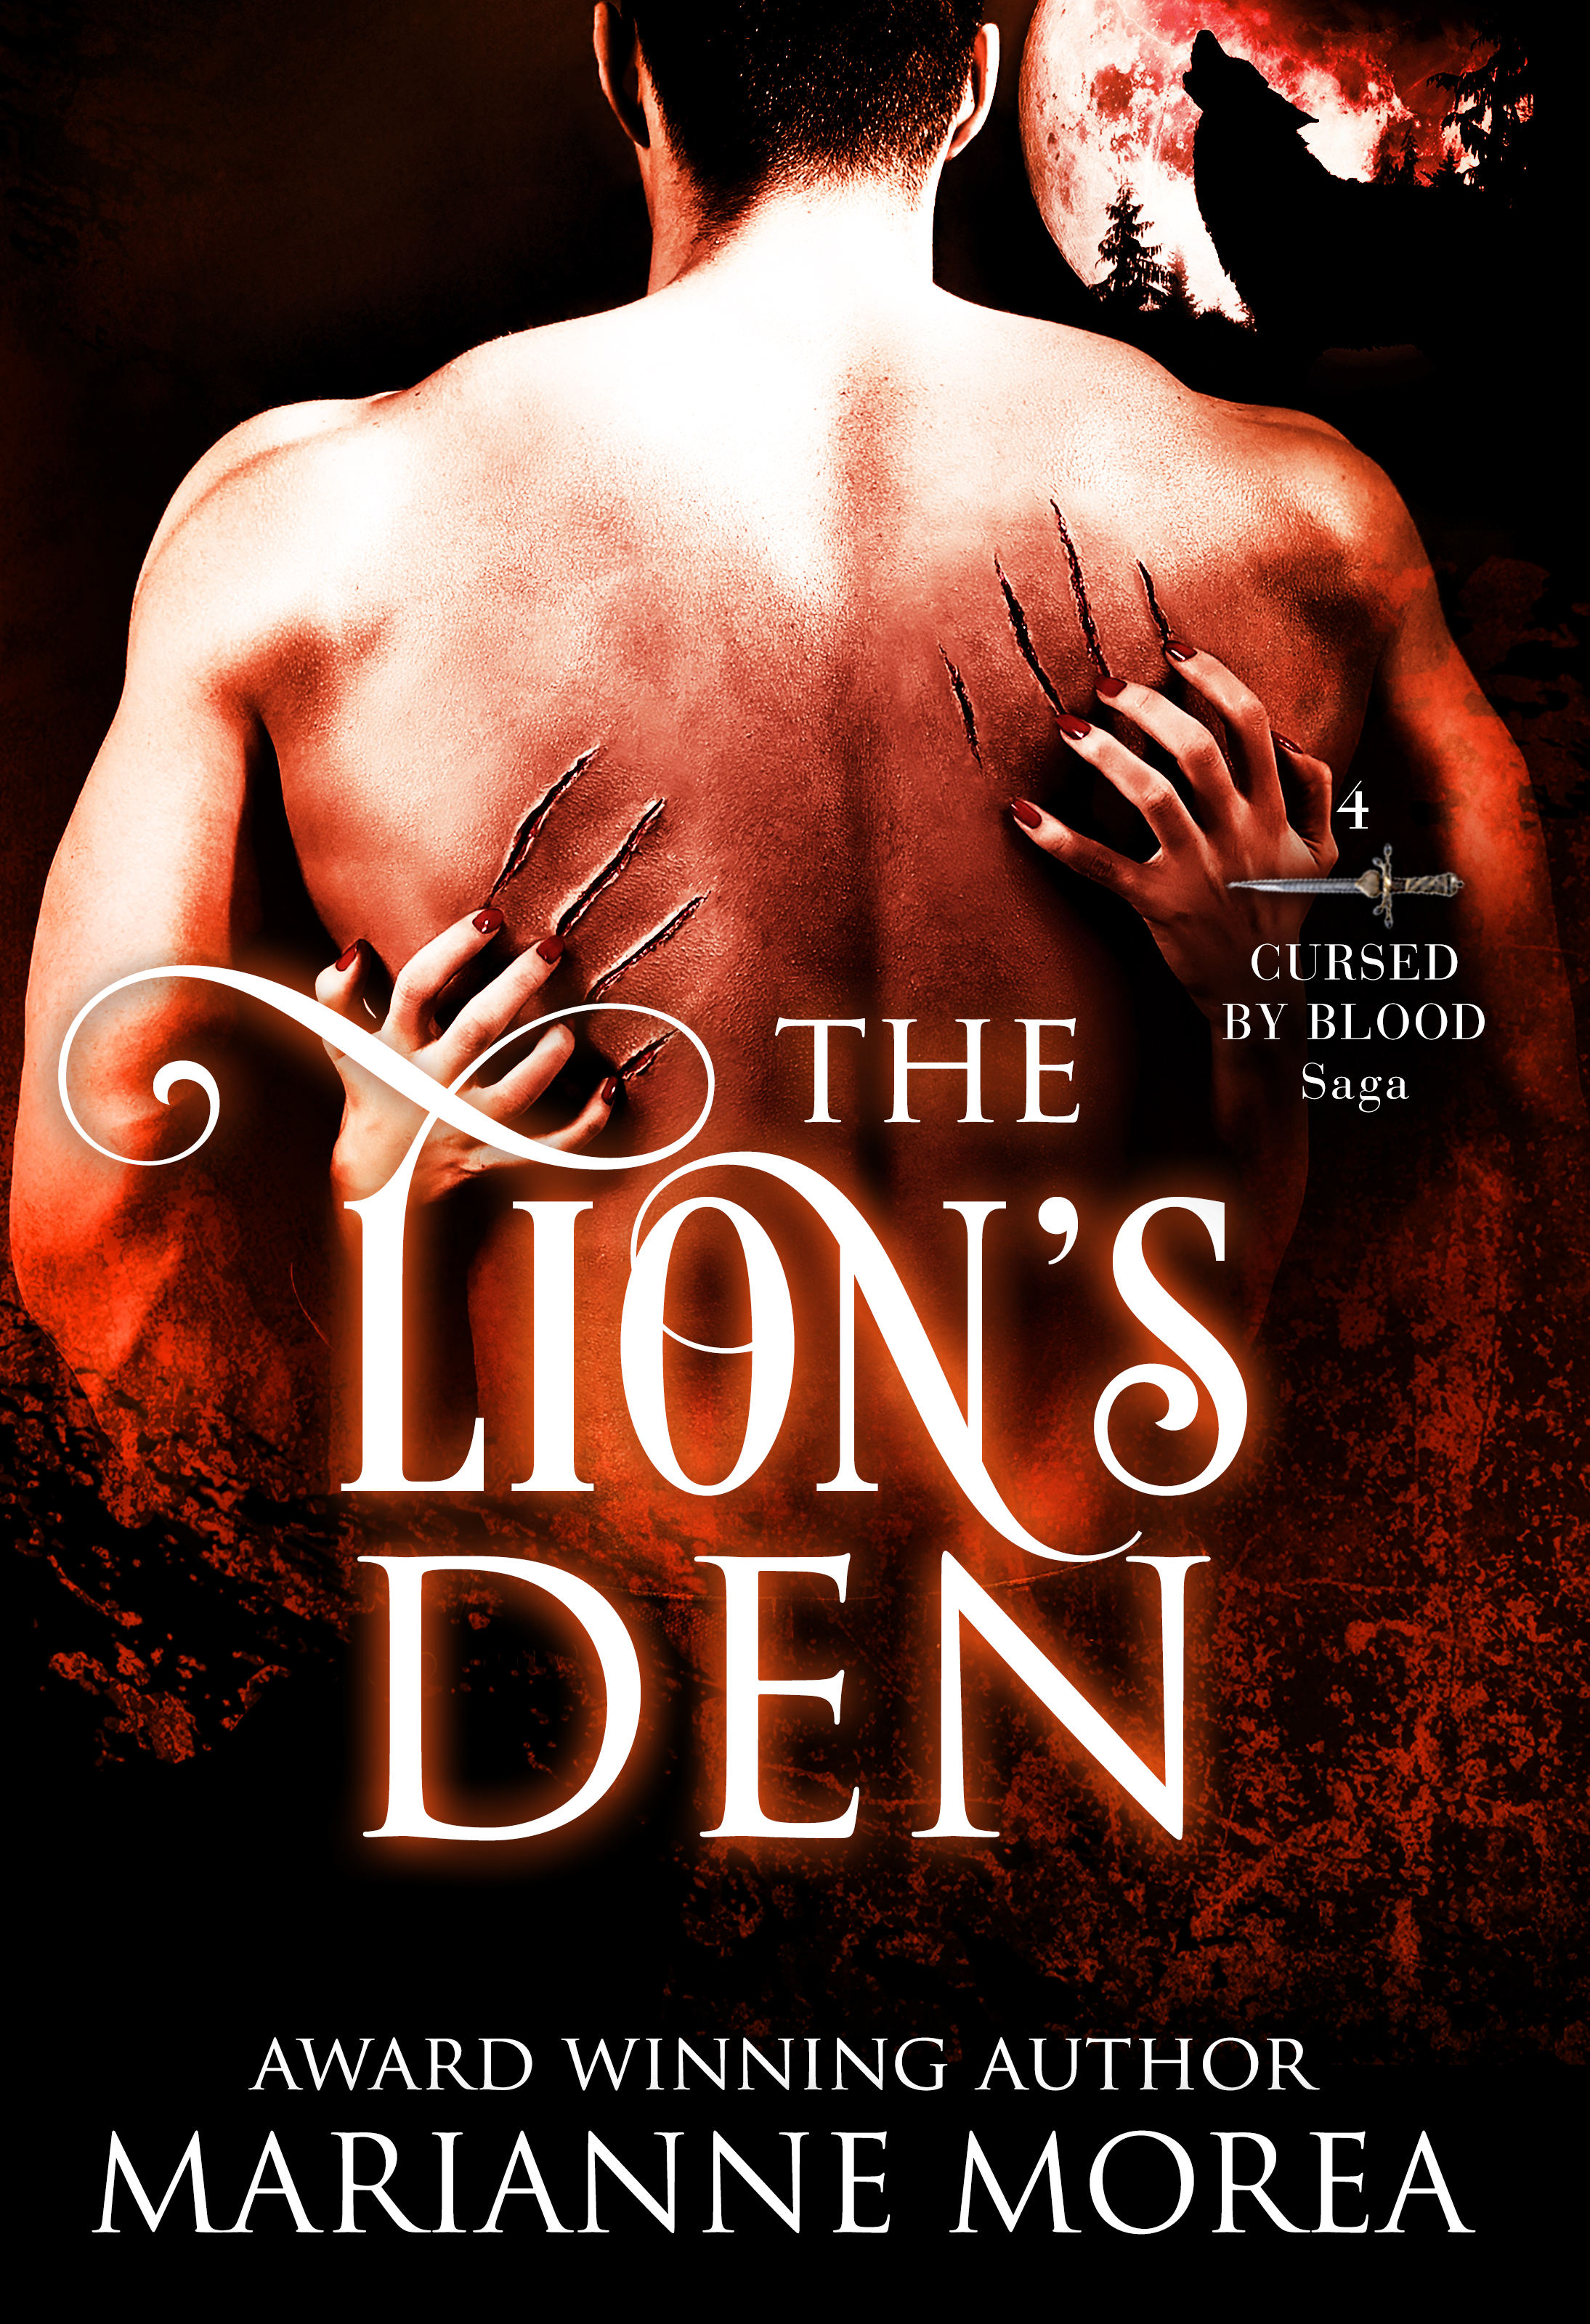 The Lion's Den by Marianne Morea